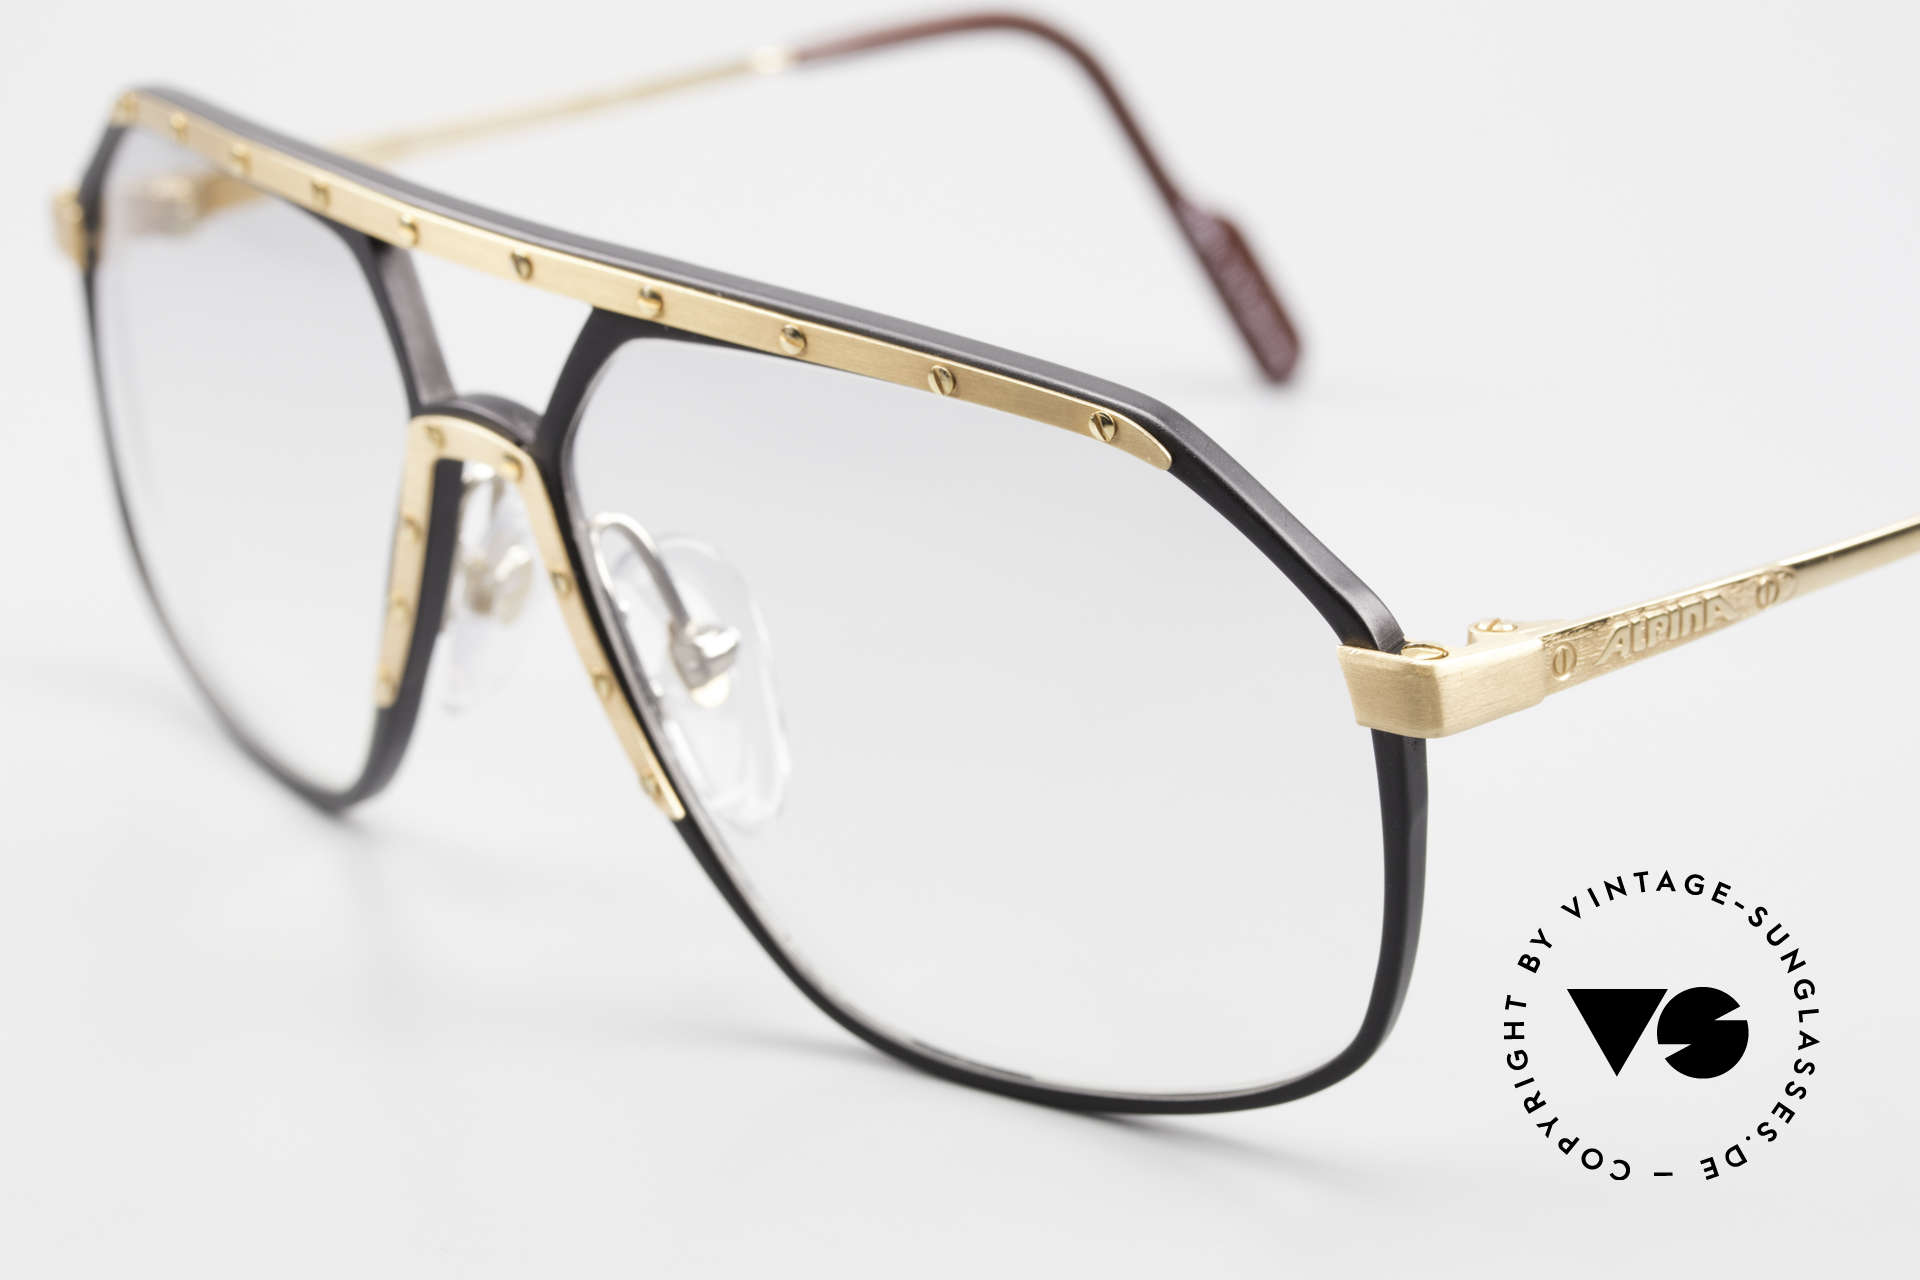 Alpina M6 80's Glasses Light Tinted Lens, the Alpina M6's were made between 1987 and 1991, Made for Men